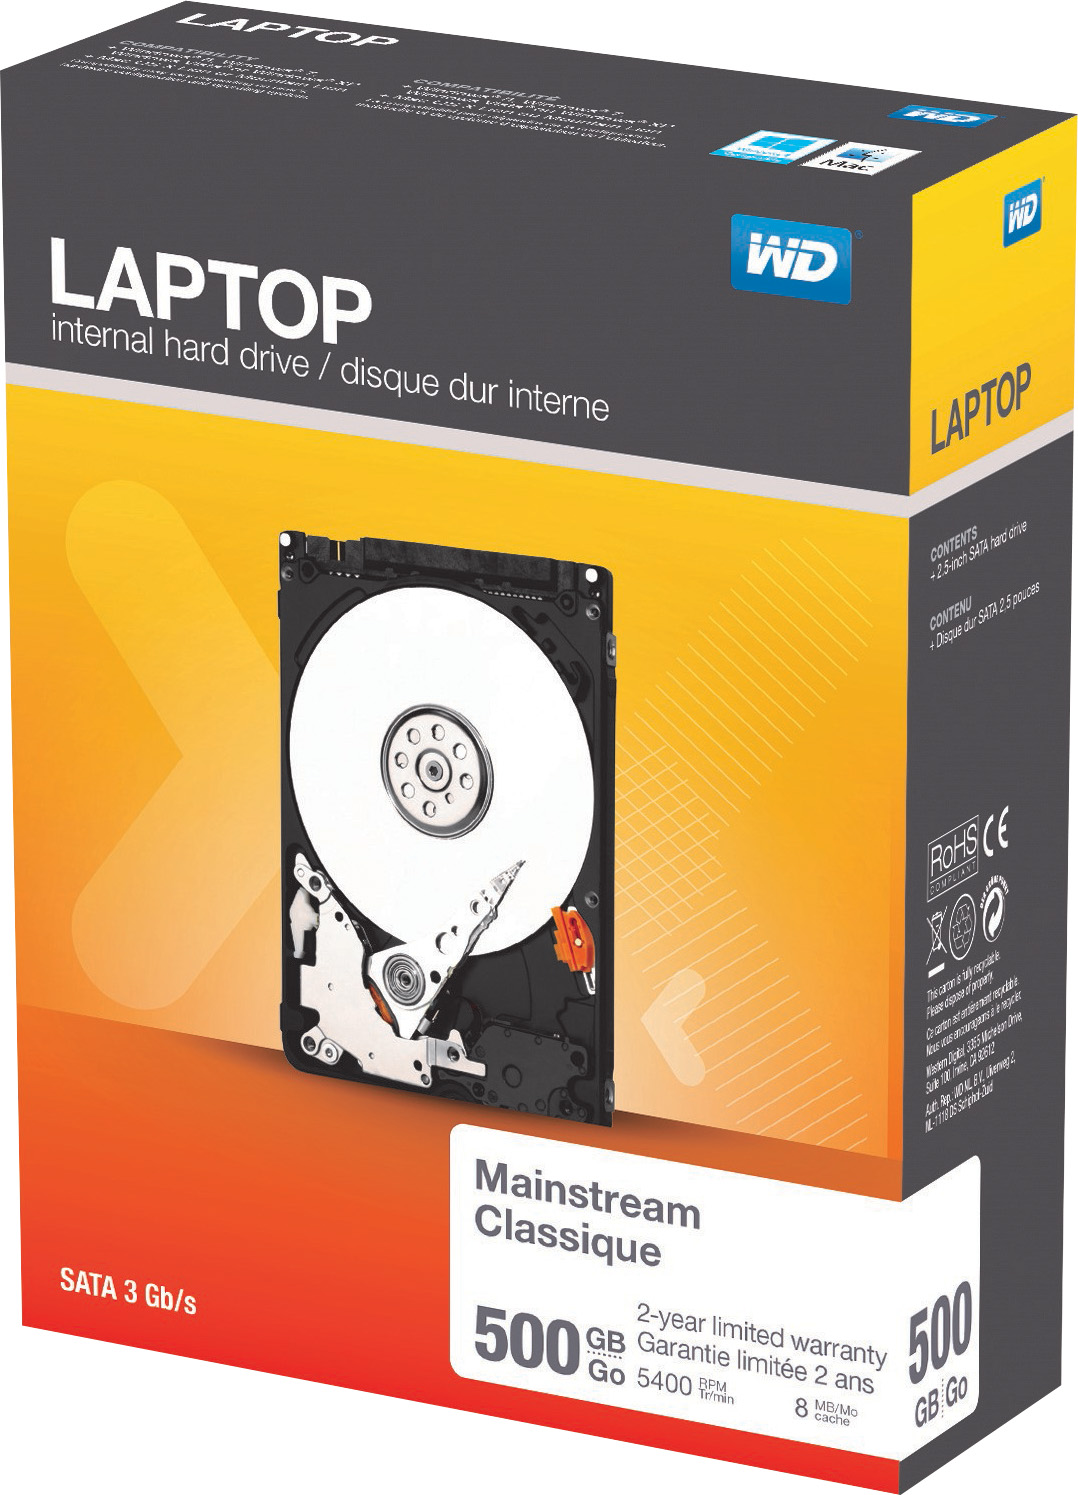 Western Digital 500GB Hard Drive for Laptops Deal